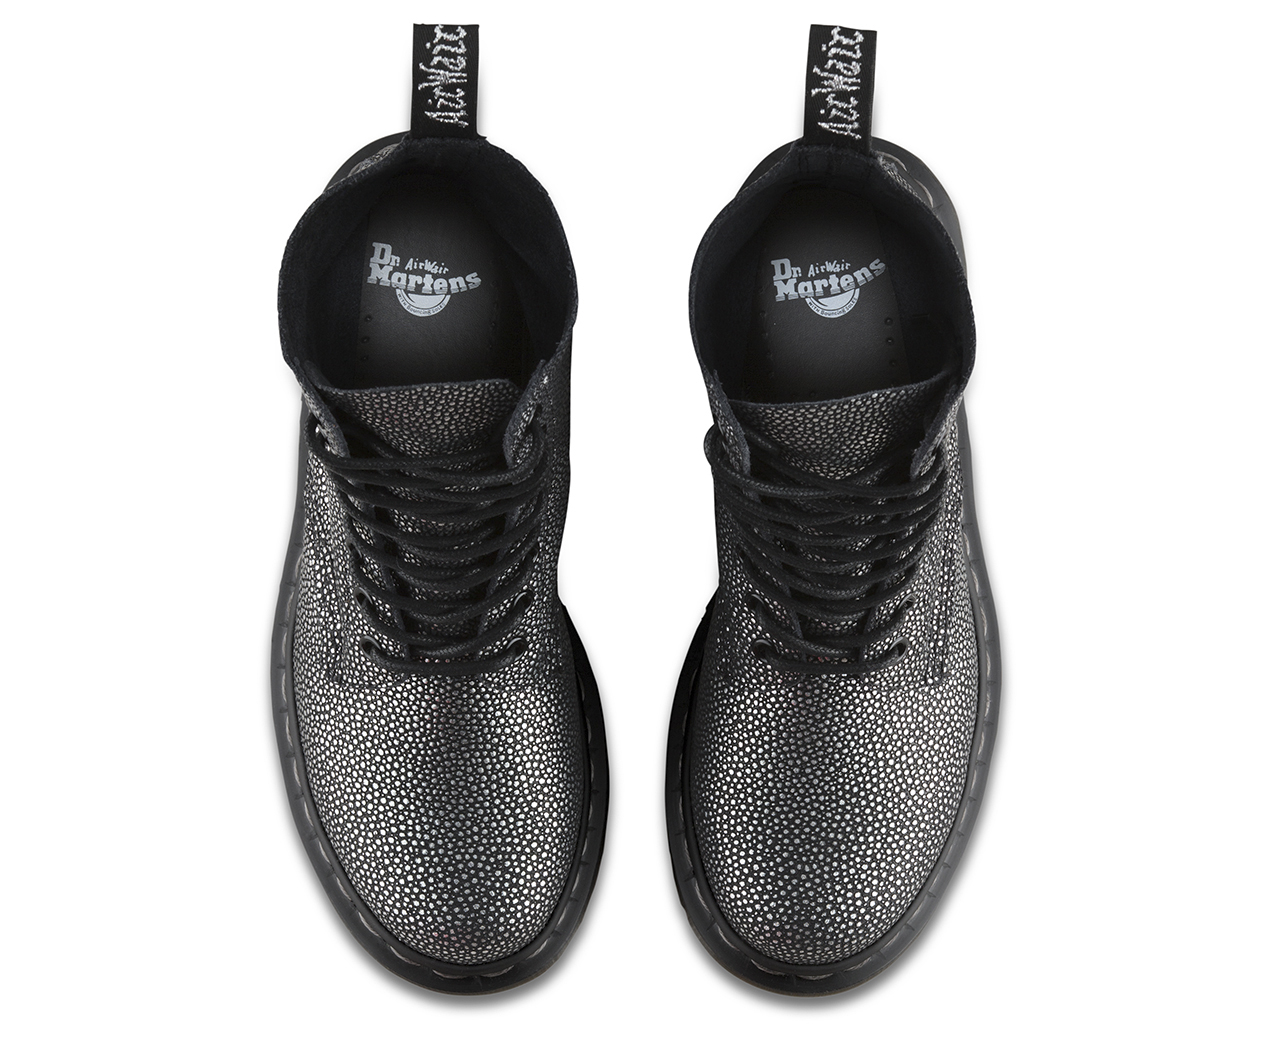 DR MARTENS METALLIC PEBBLE 1460 PASCAL